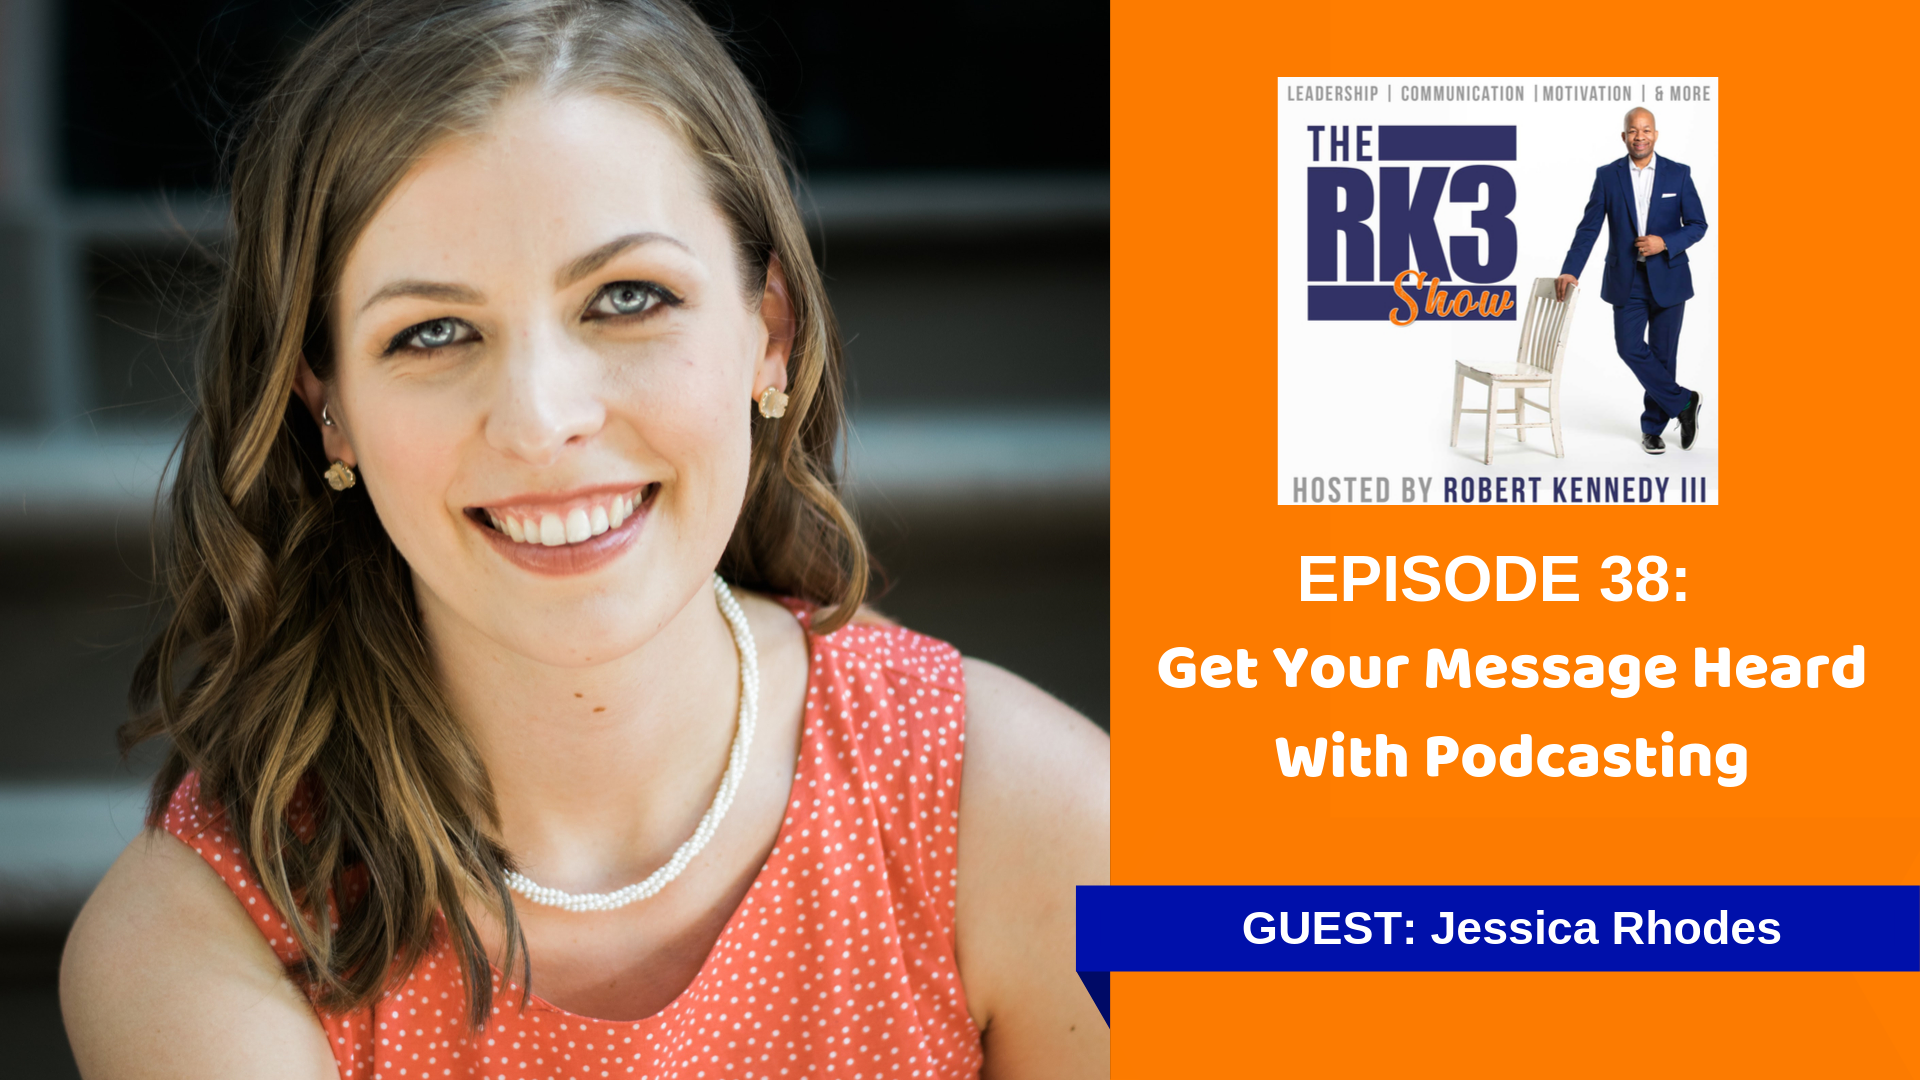 Get Your Message Heard With Podcasting